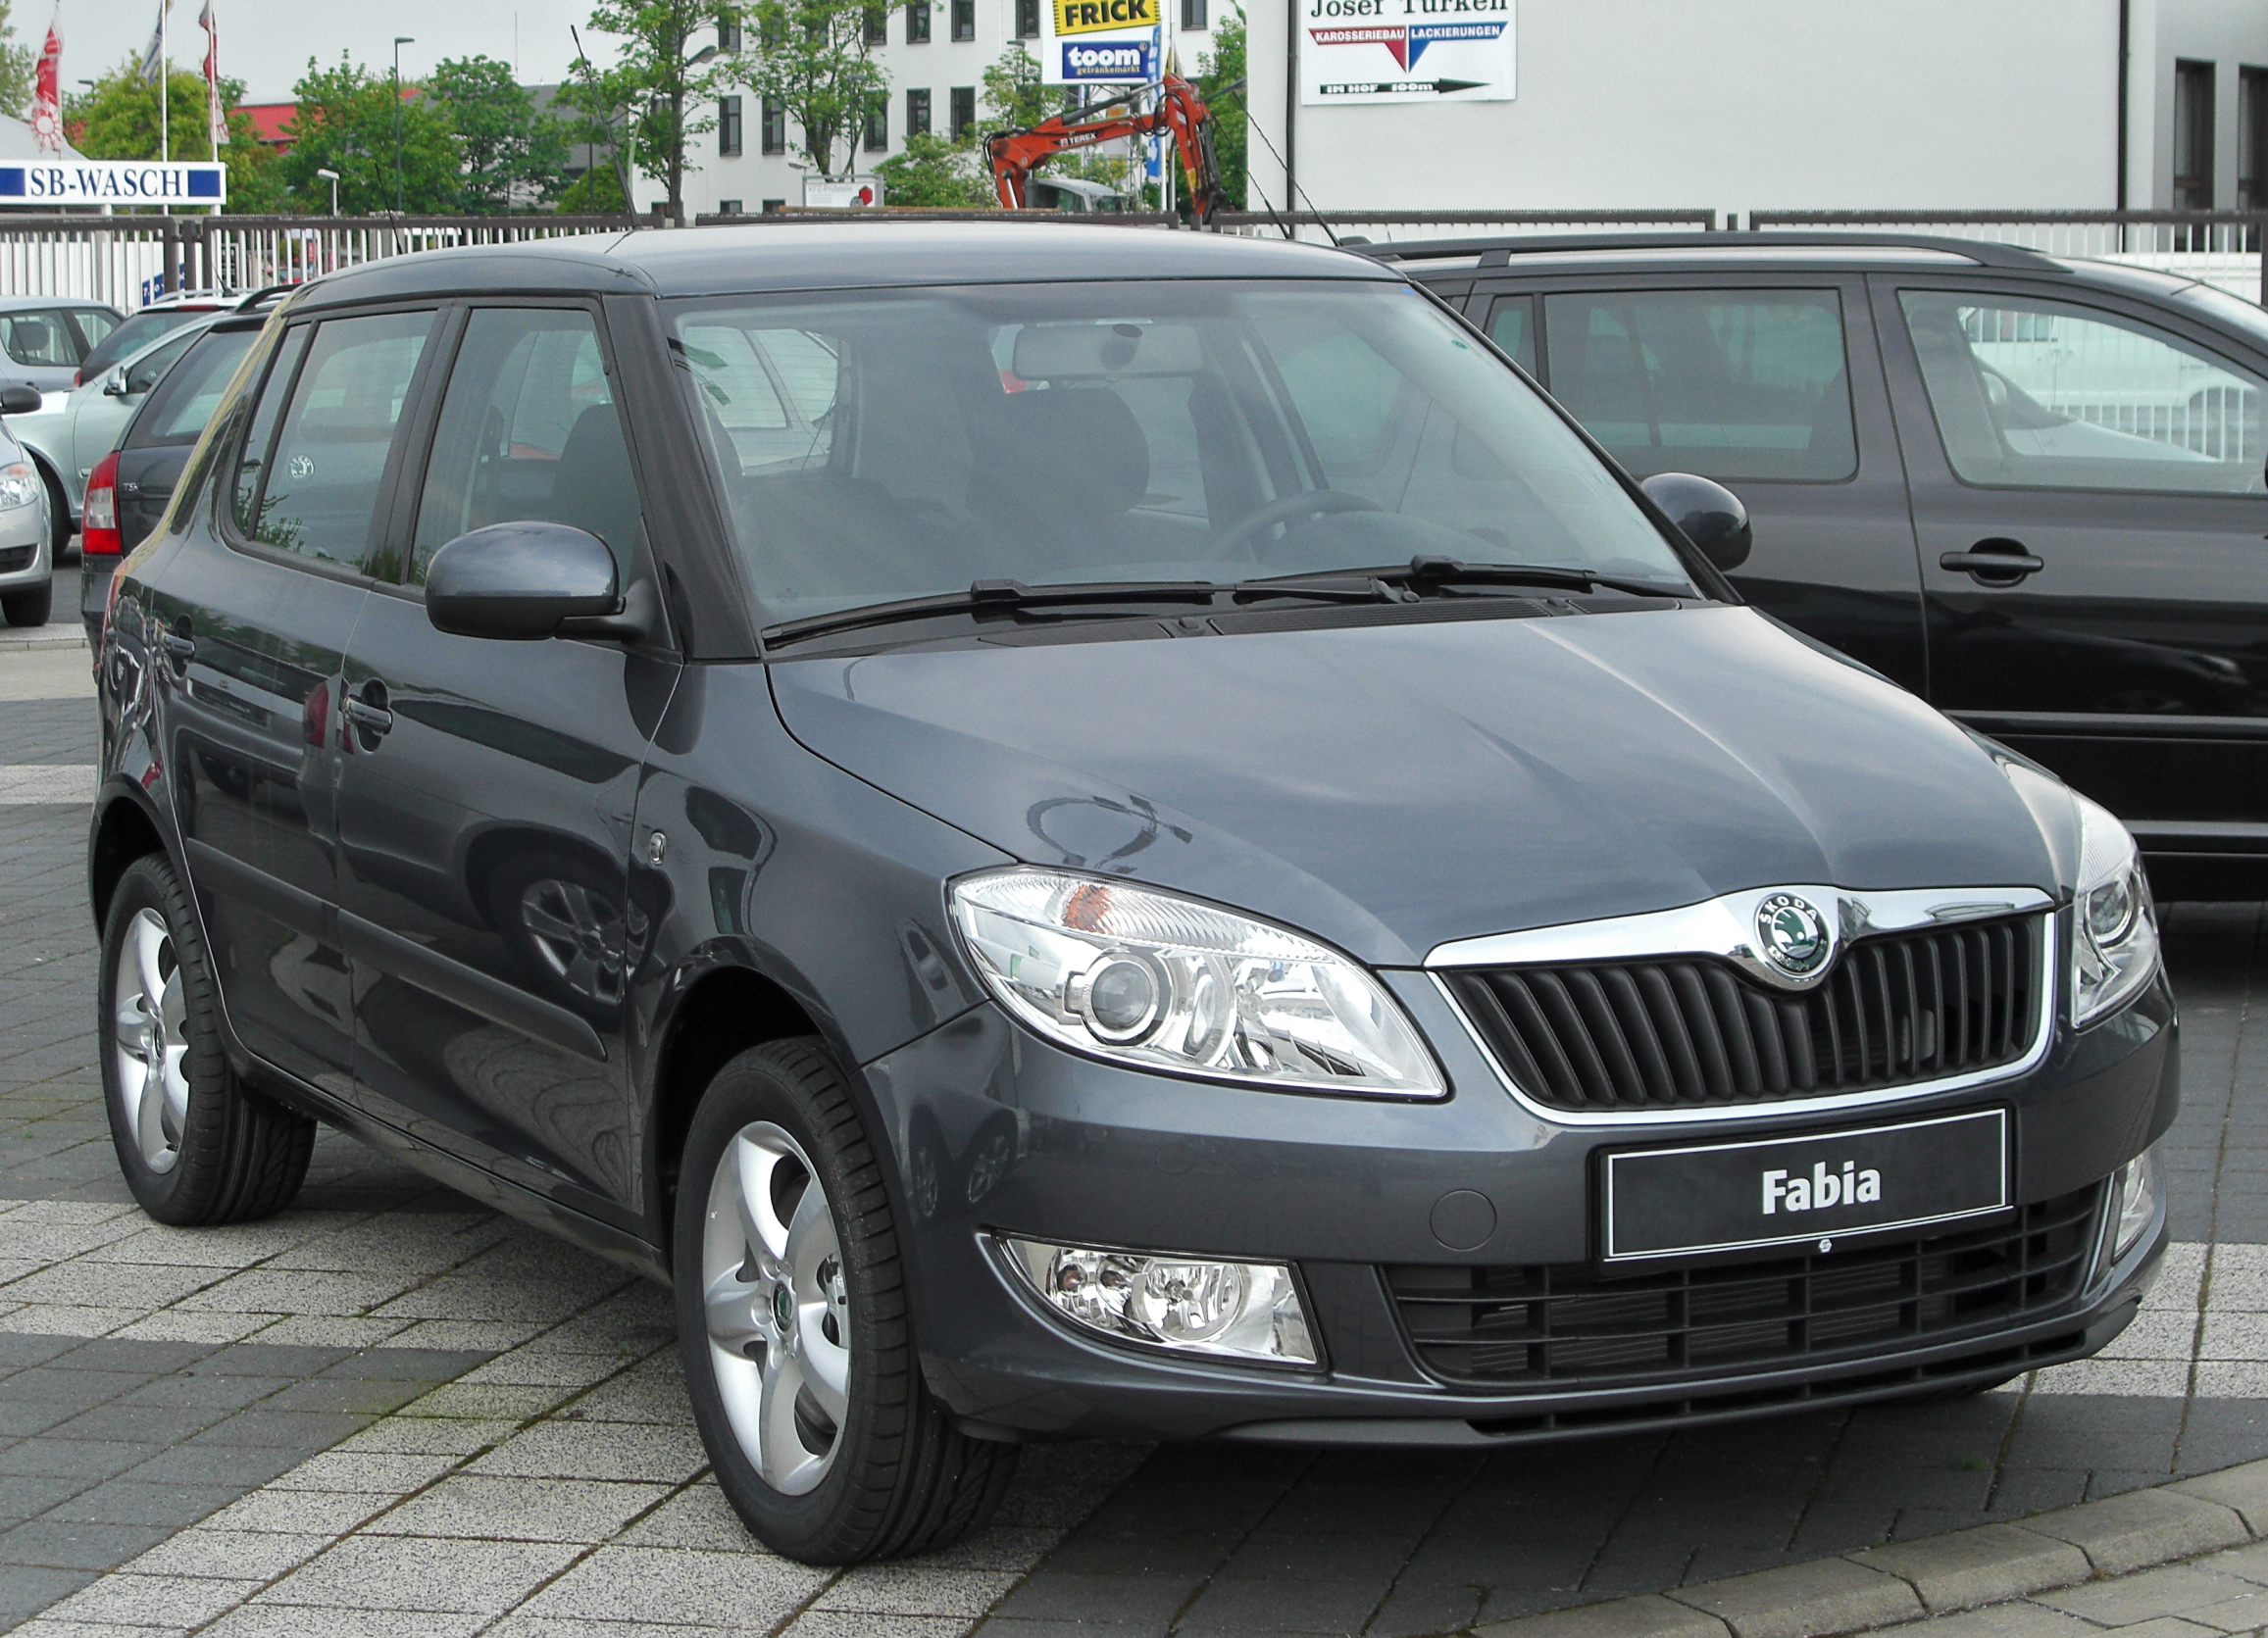 datei skoda fabia ii facelift front wikipedia. Black Bedroom Furniture Sets. Home Design Ideas